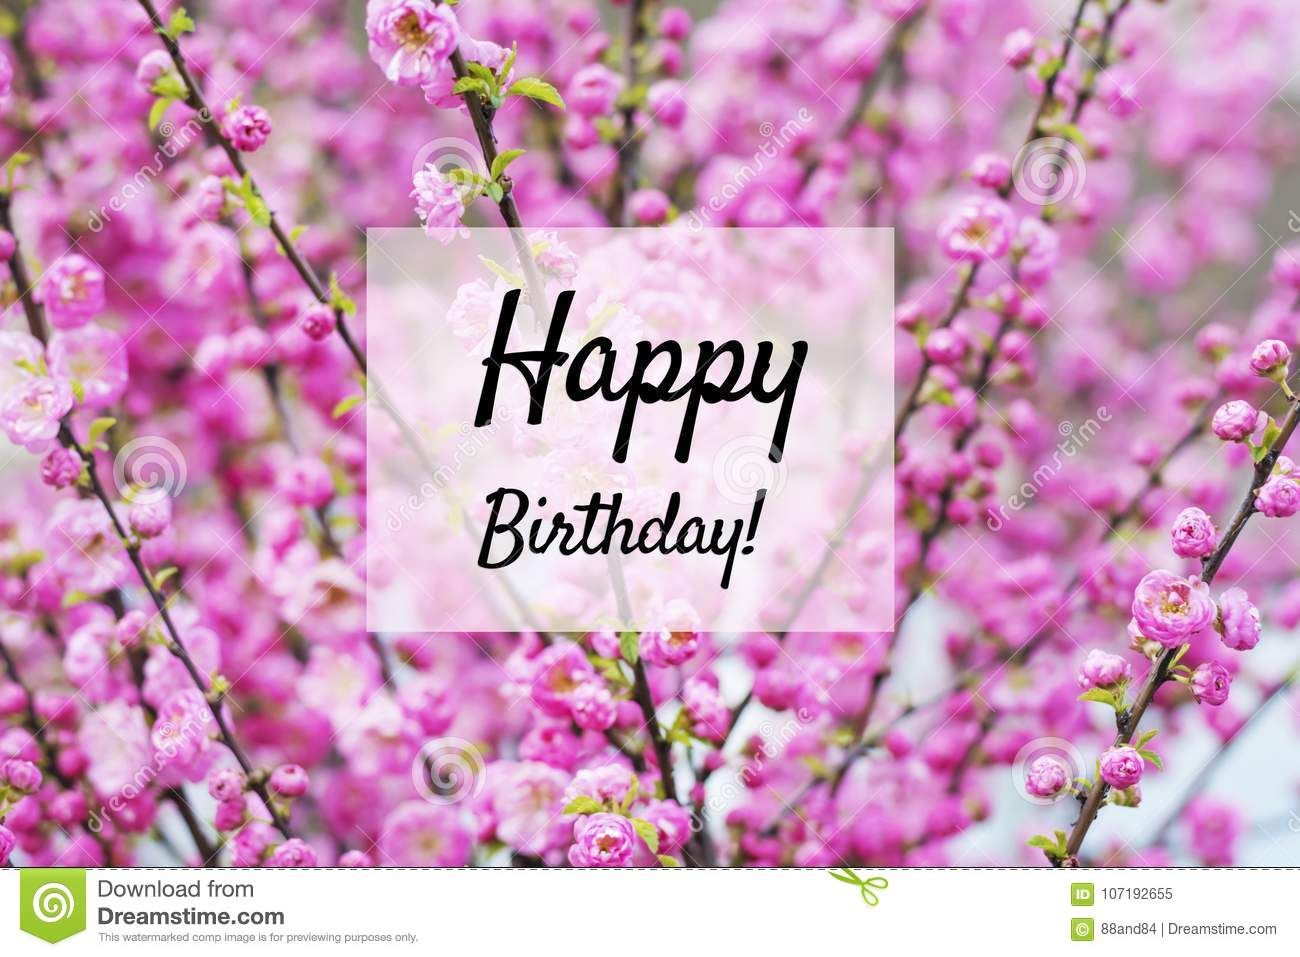 happy birthday card with flowers background - Happy Birthday Cards Flowers